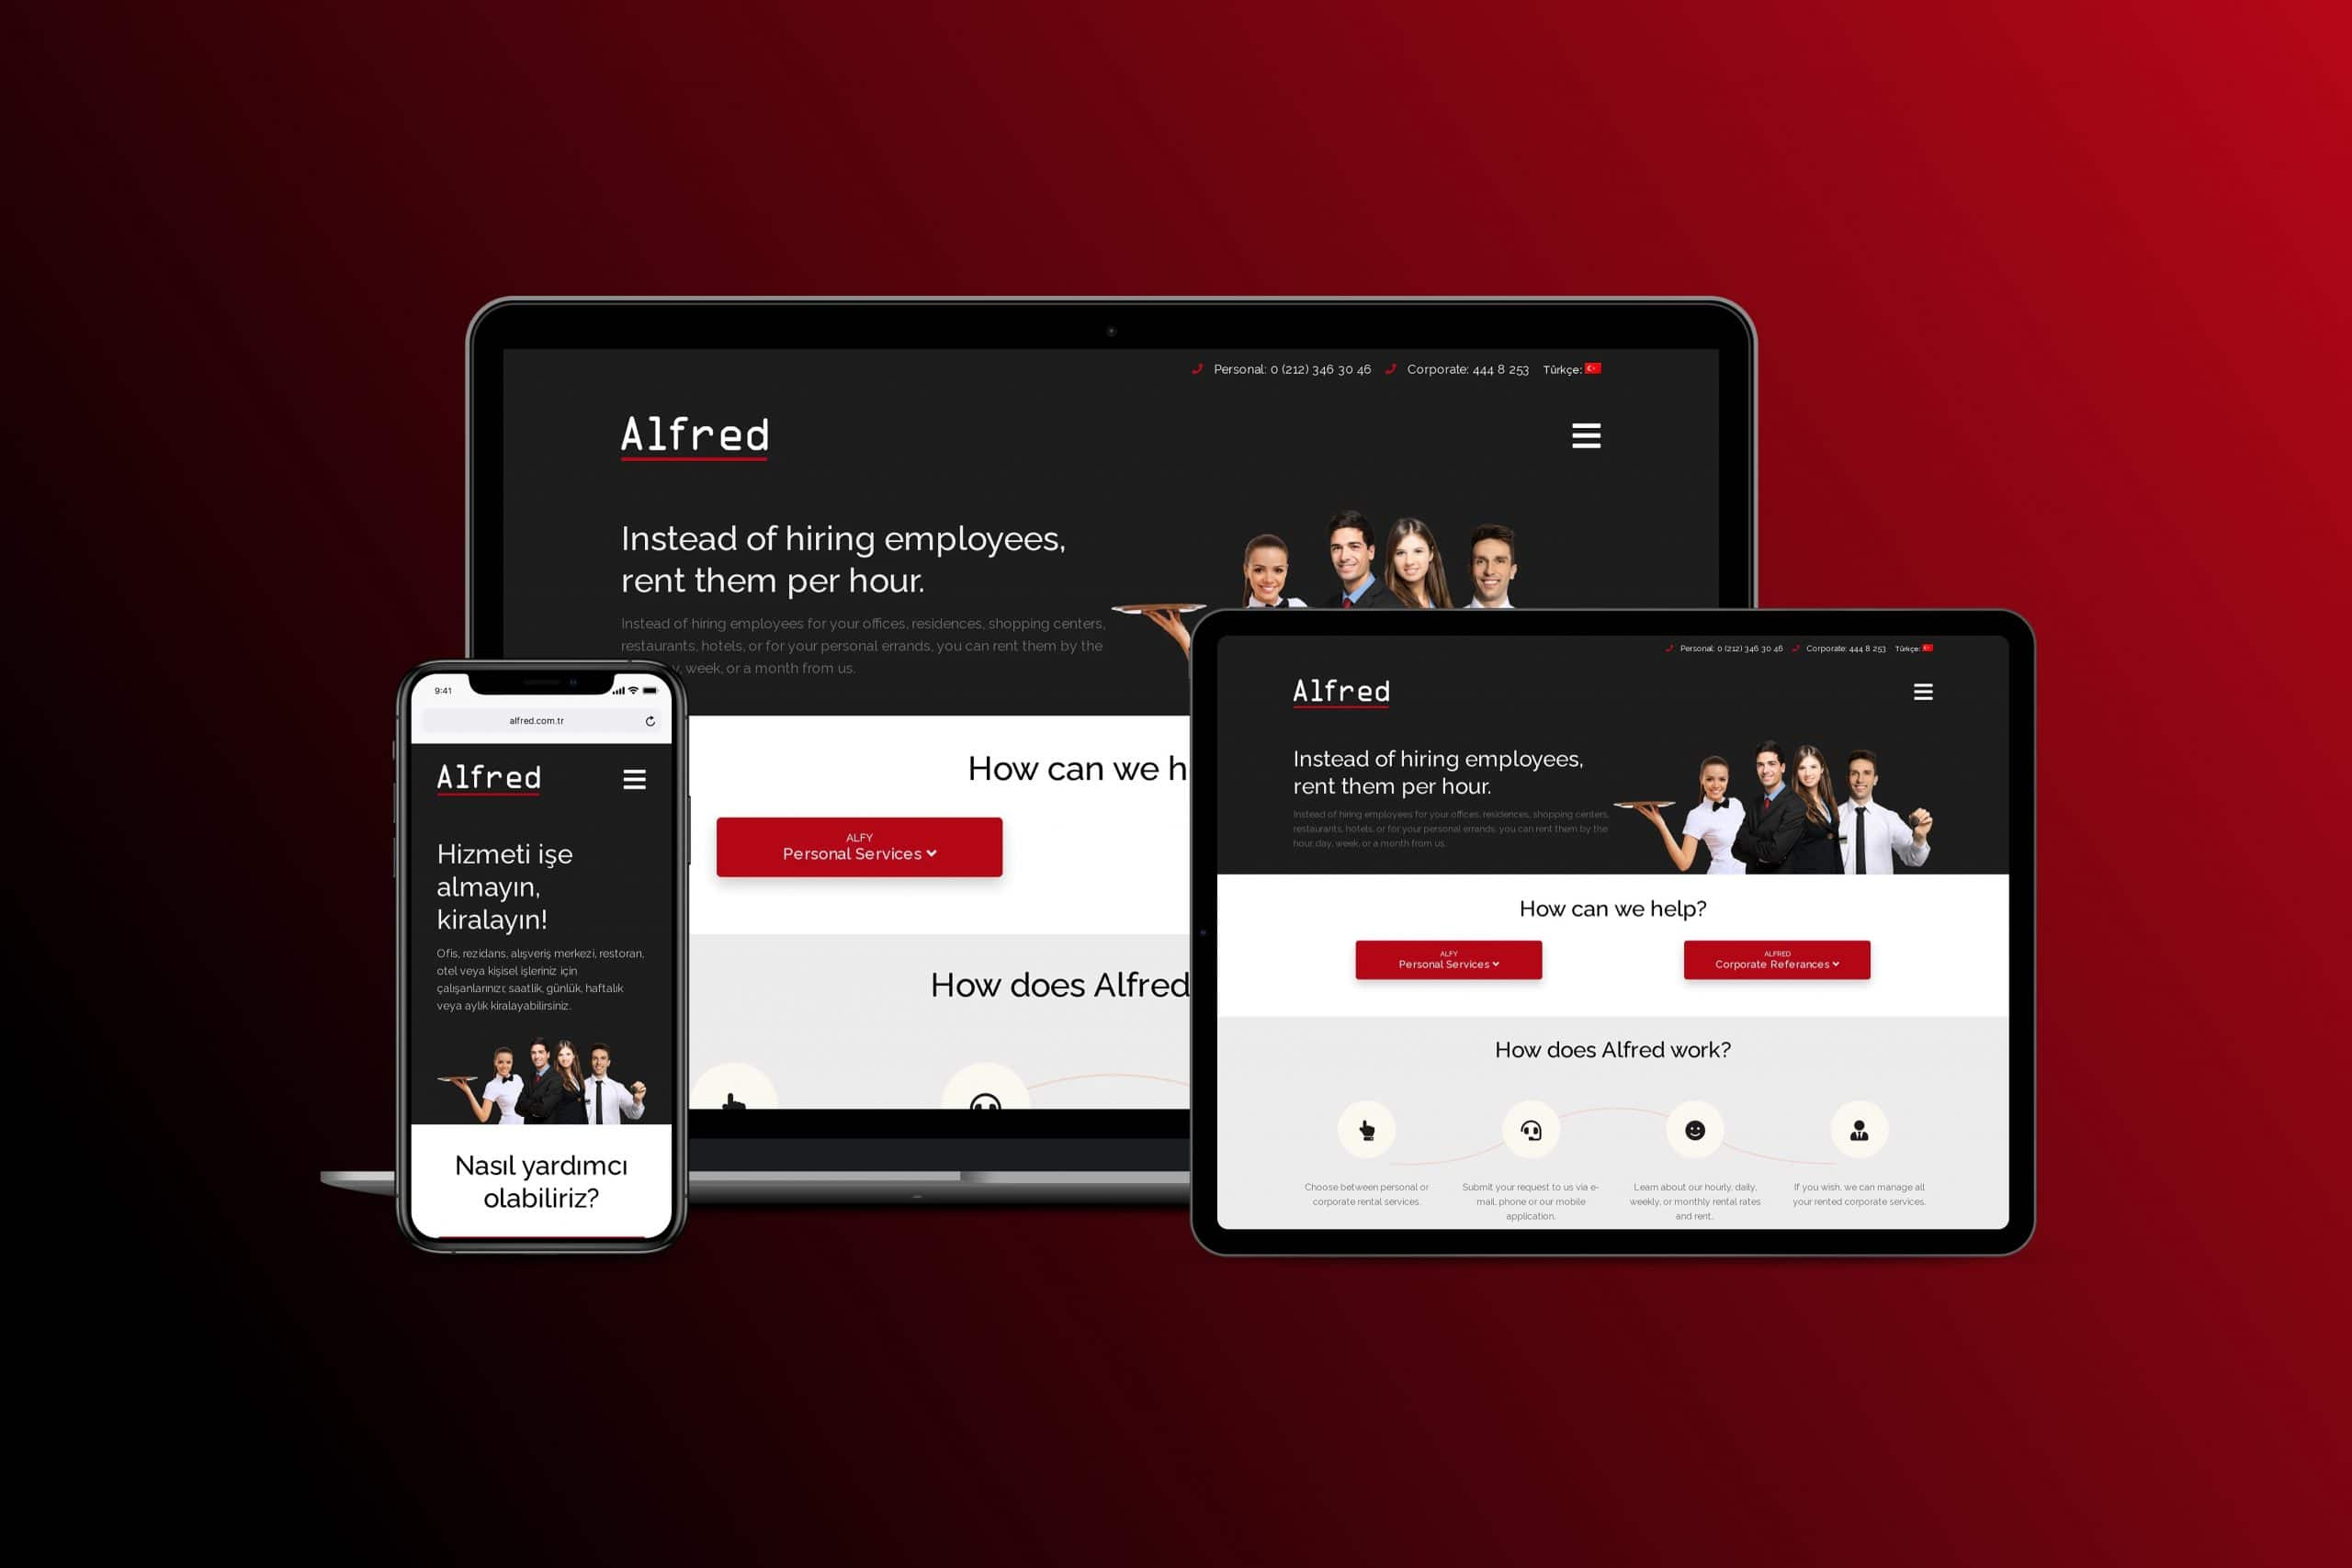 alfred concierge services scaled